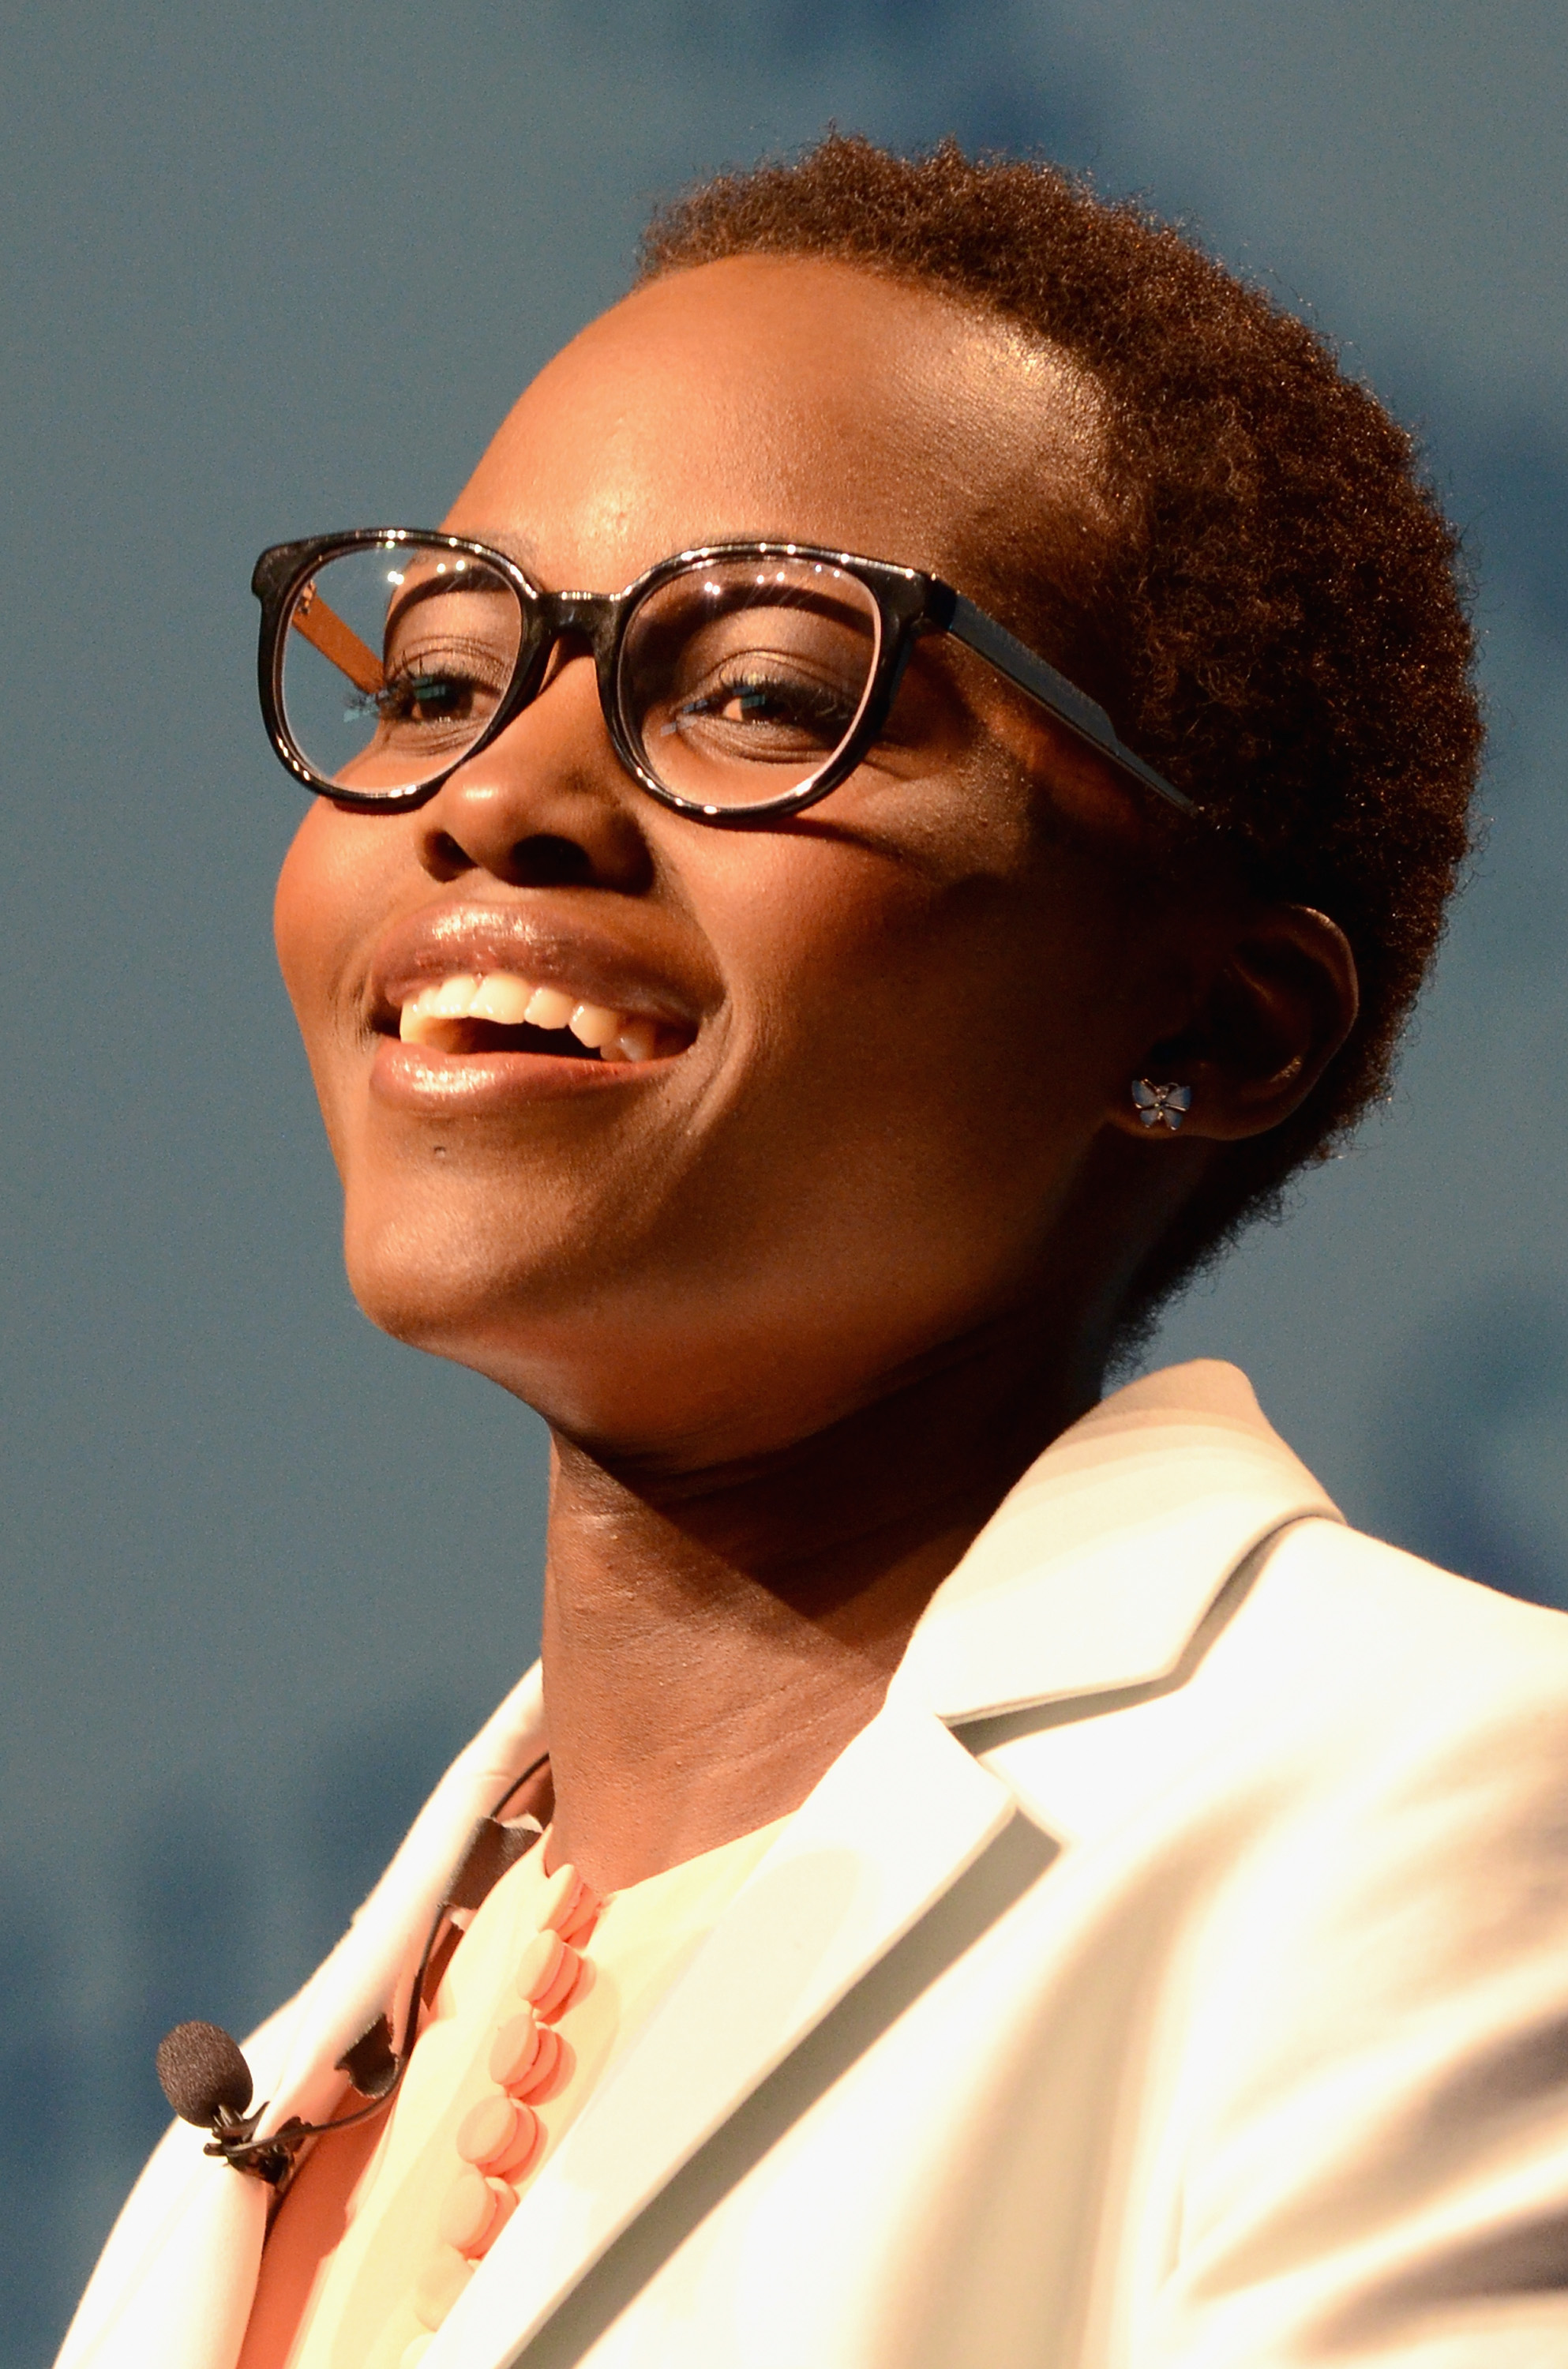 Actress Lupita Nyong'o speaks on stage at the 2014 Massachusetts Conference for Women